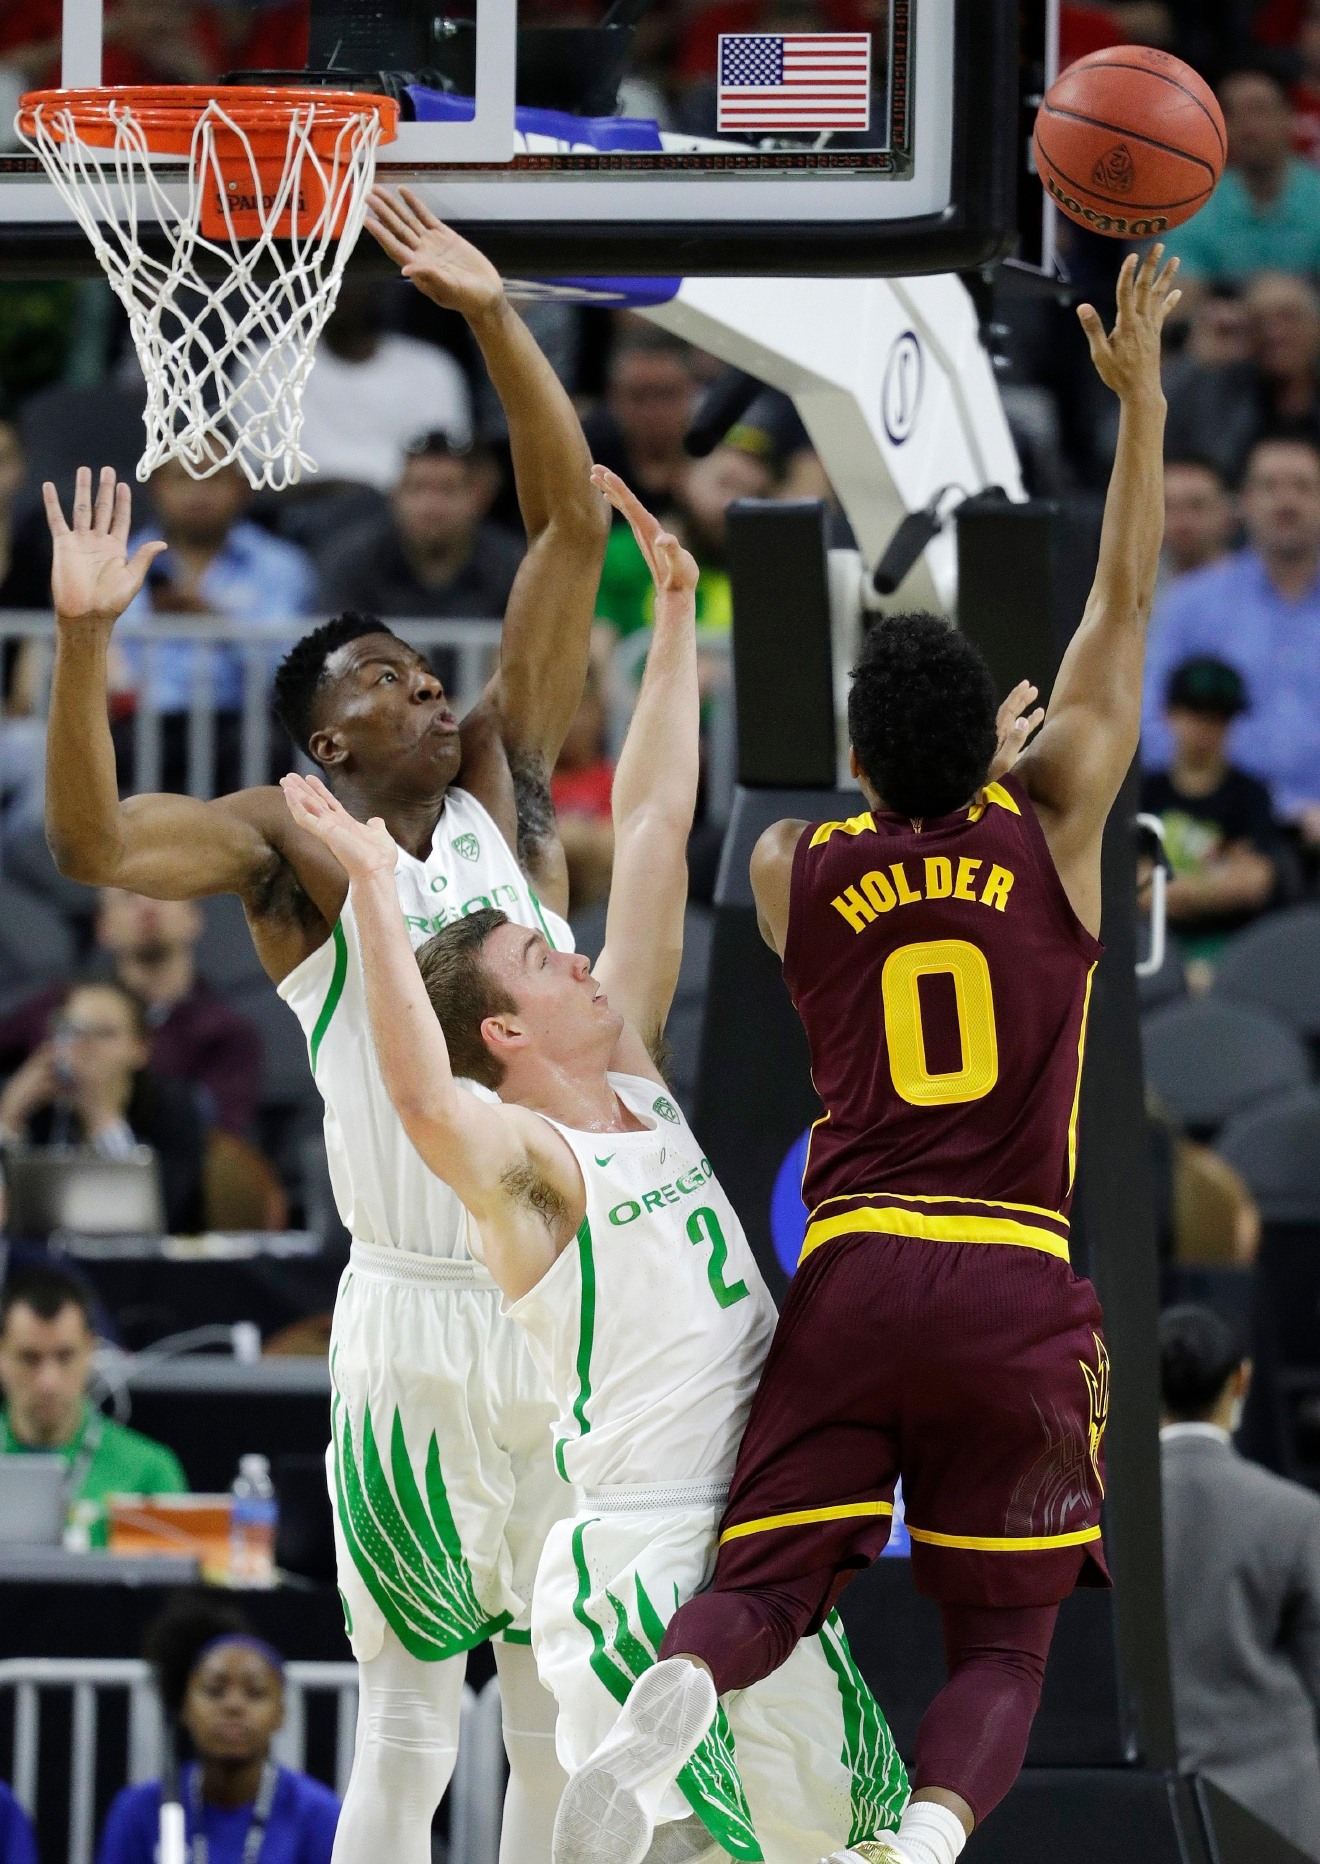 Oregon's Kavell Bigby-Williams, left, and Casey Benson, center, try to block a shot by Arizona State's Tra Holder during the first half of an NCAA college basketball game in the first round of the Pac-12 men's tournament Thursday, March 9, 2017, in Las Vegas. (AP Photo/John Locher)